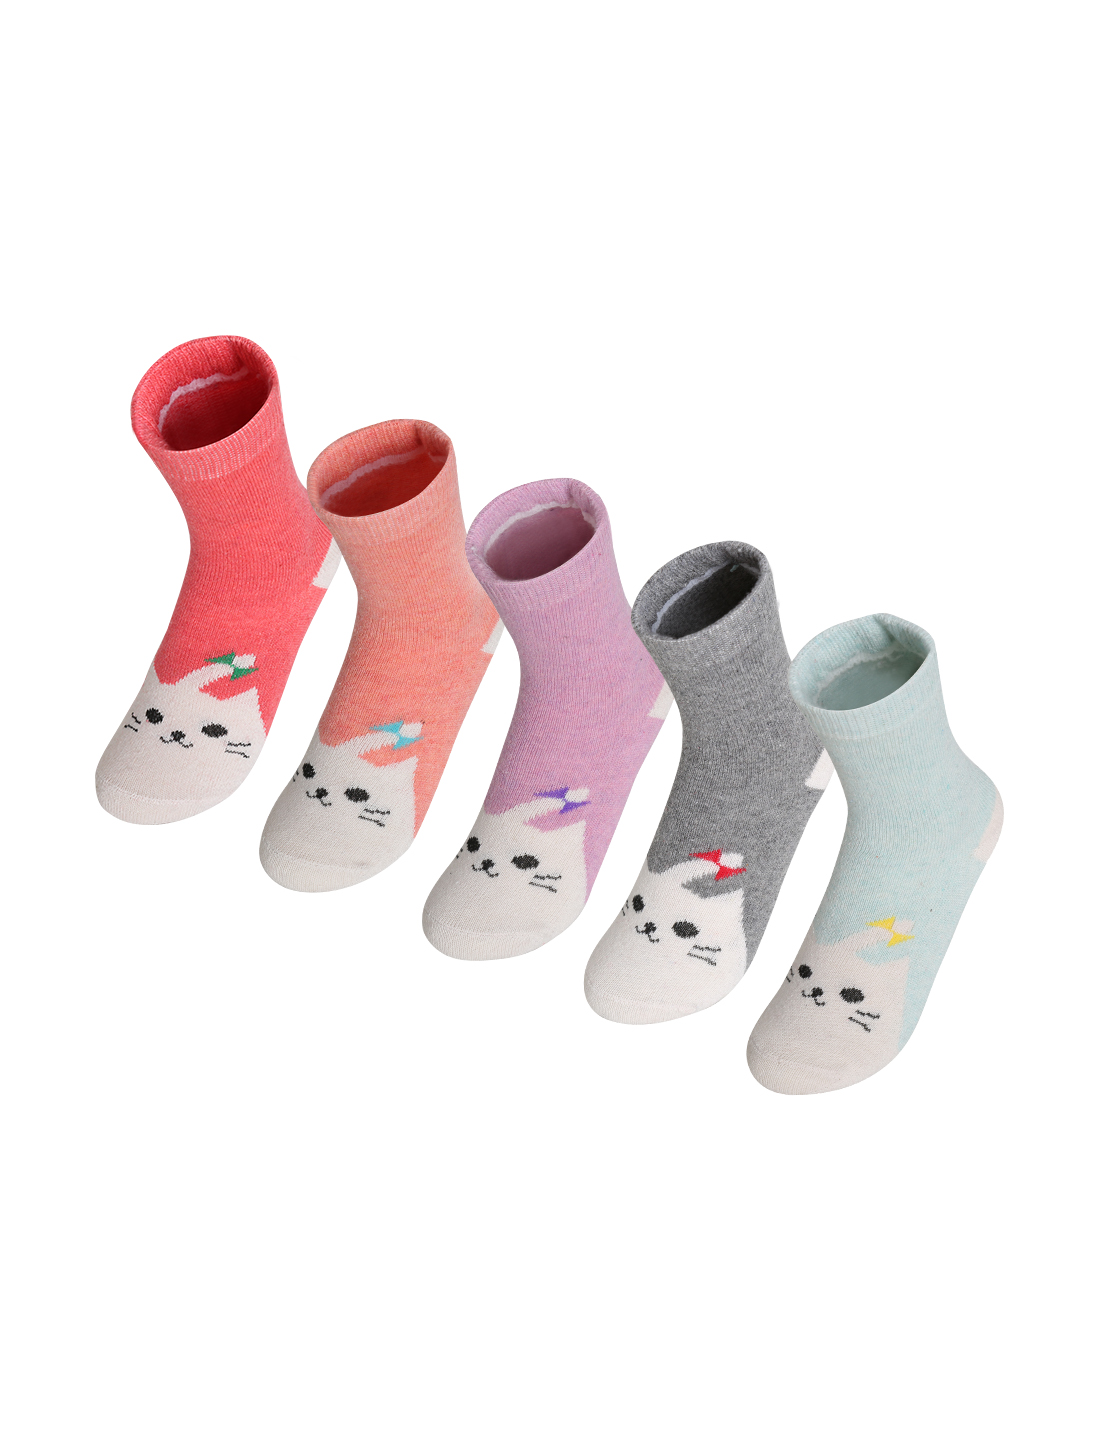 Women 5 Pack Animal Pattern Thermal Crew Socks 7-9 Assorted-5